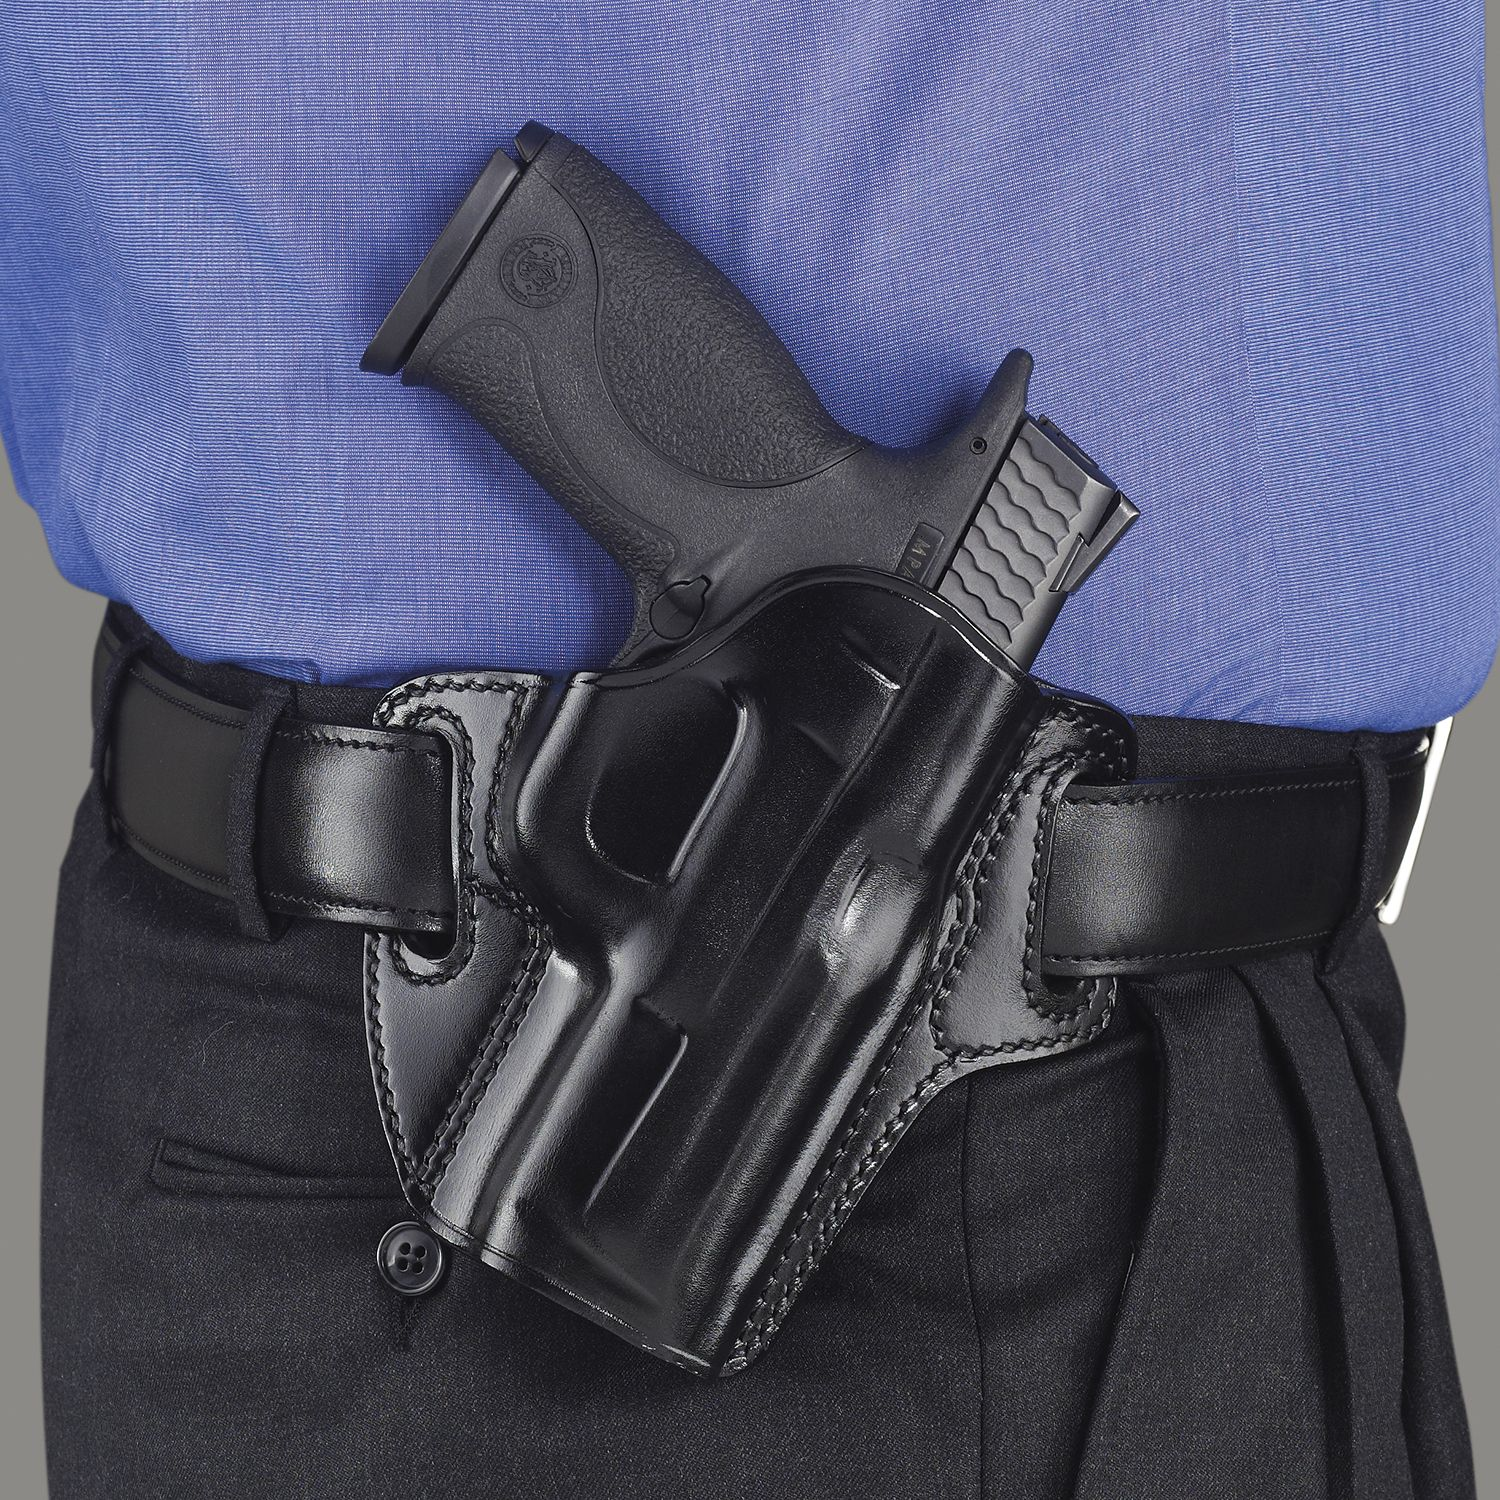 CONCEALABLE: The Concealable™ holster is one of Galco's most